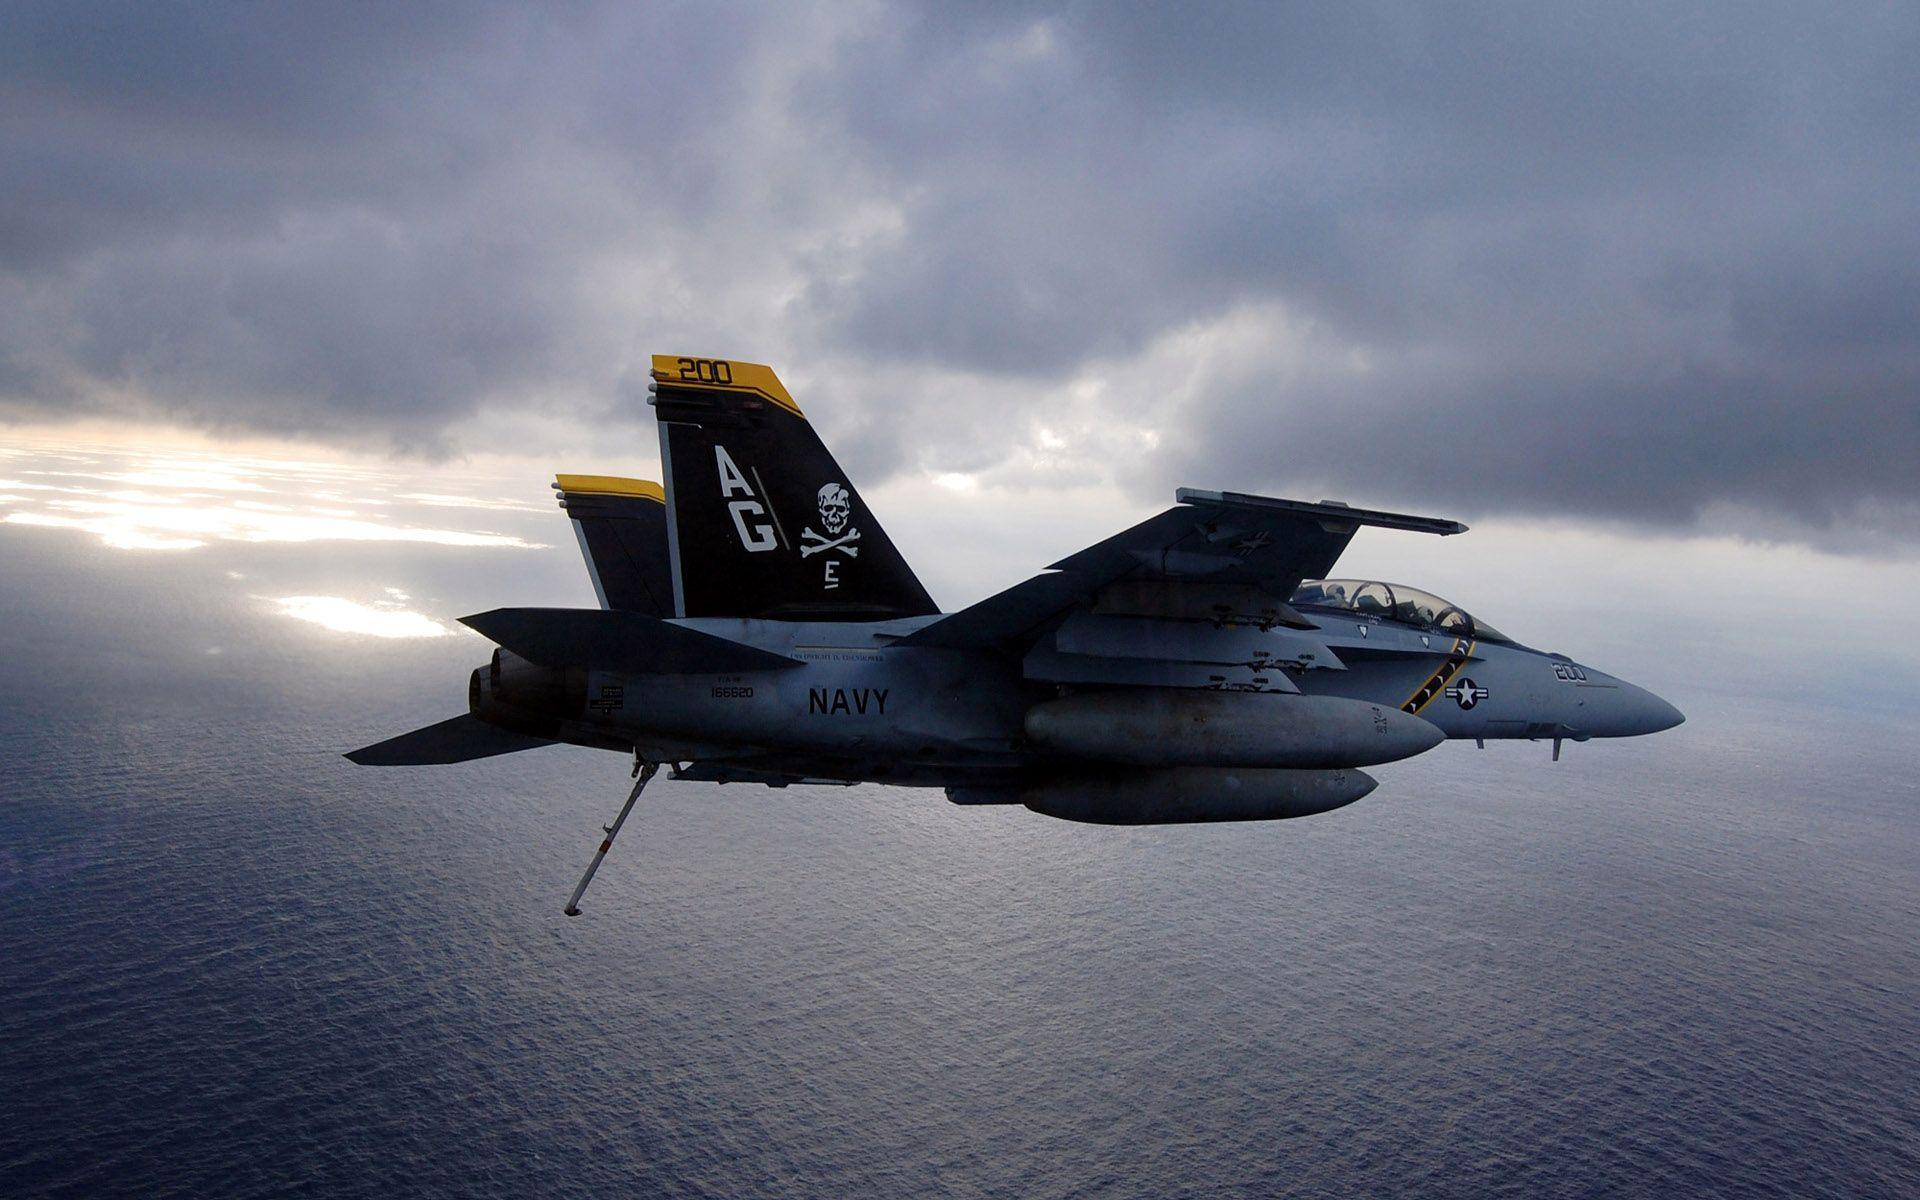 Naval aviation wallpapers and image wallpapers